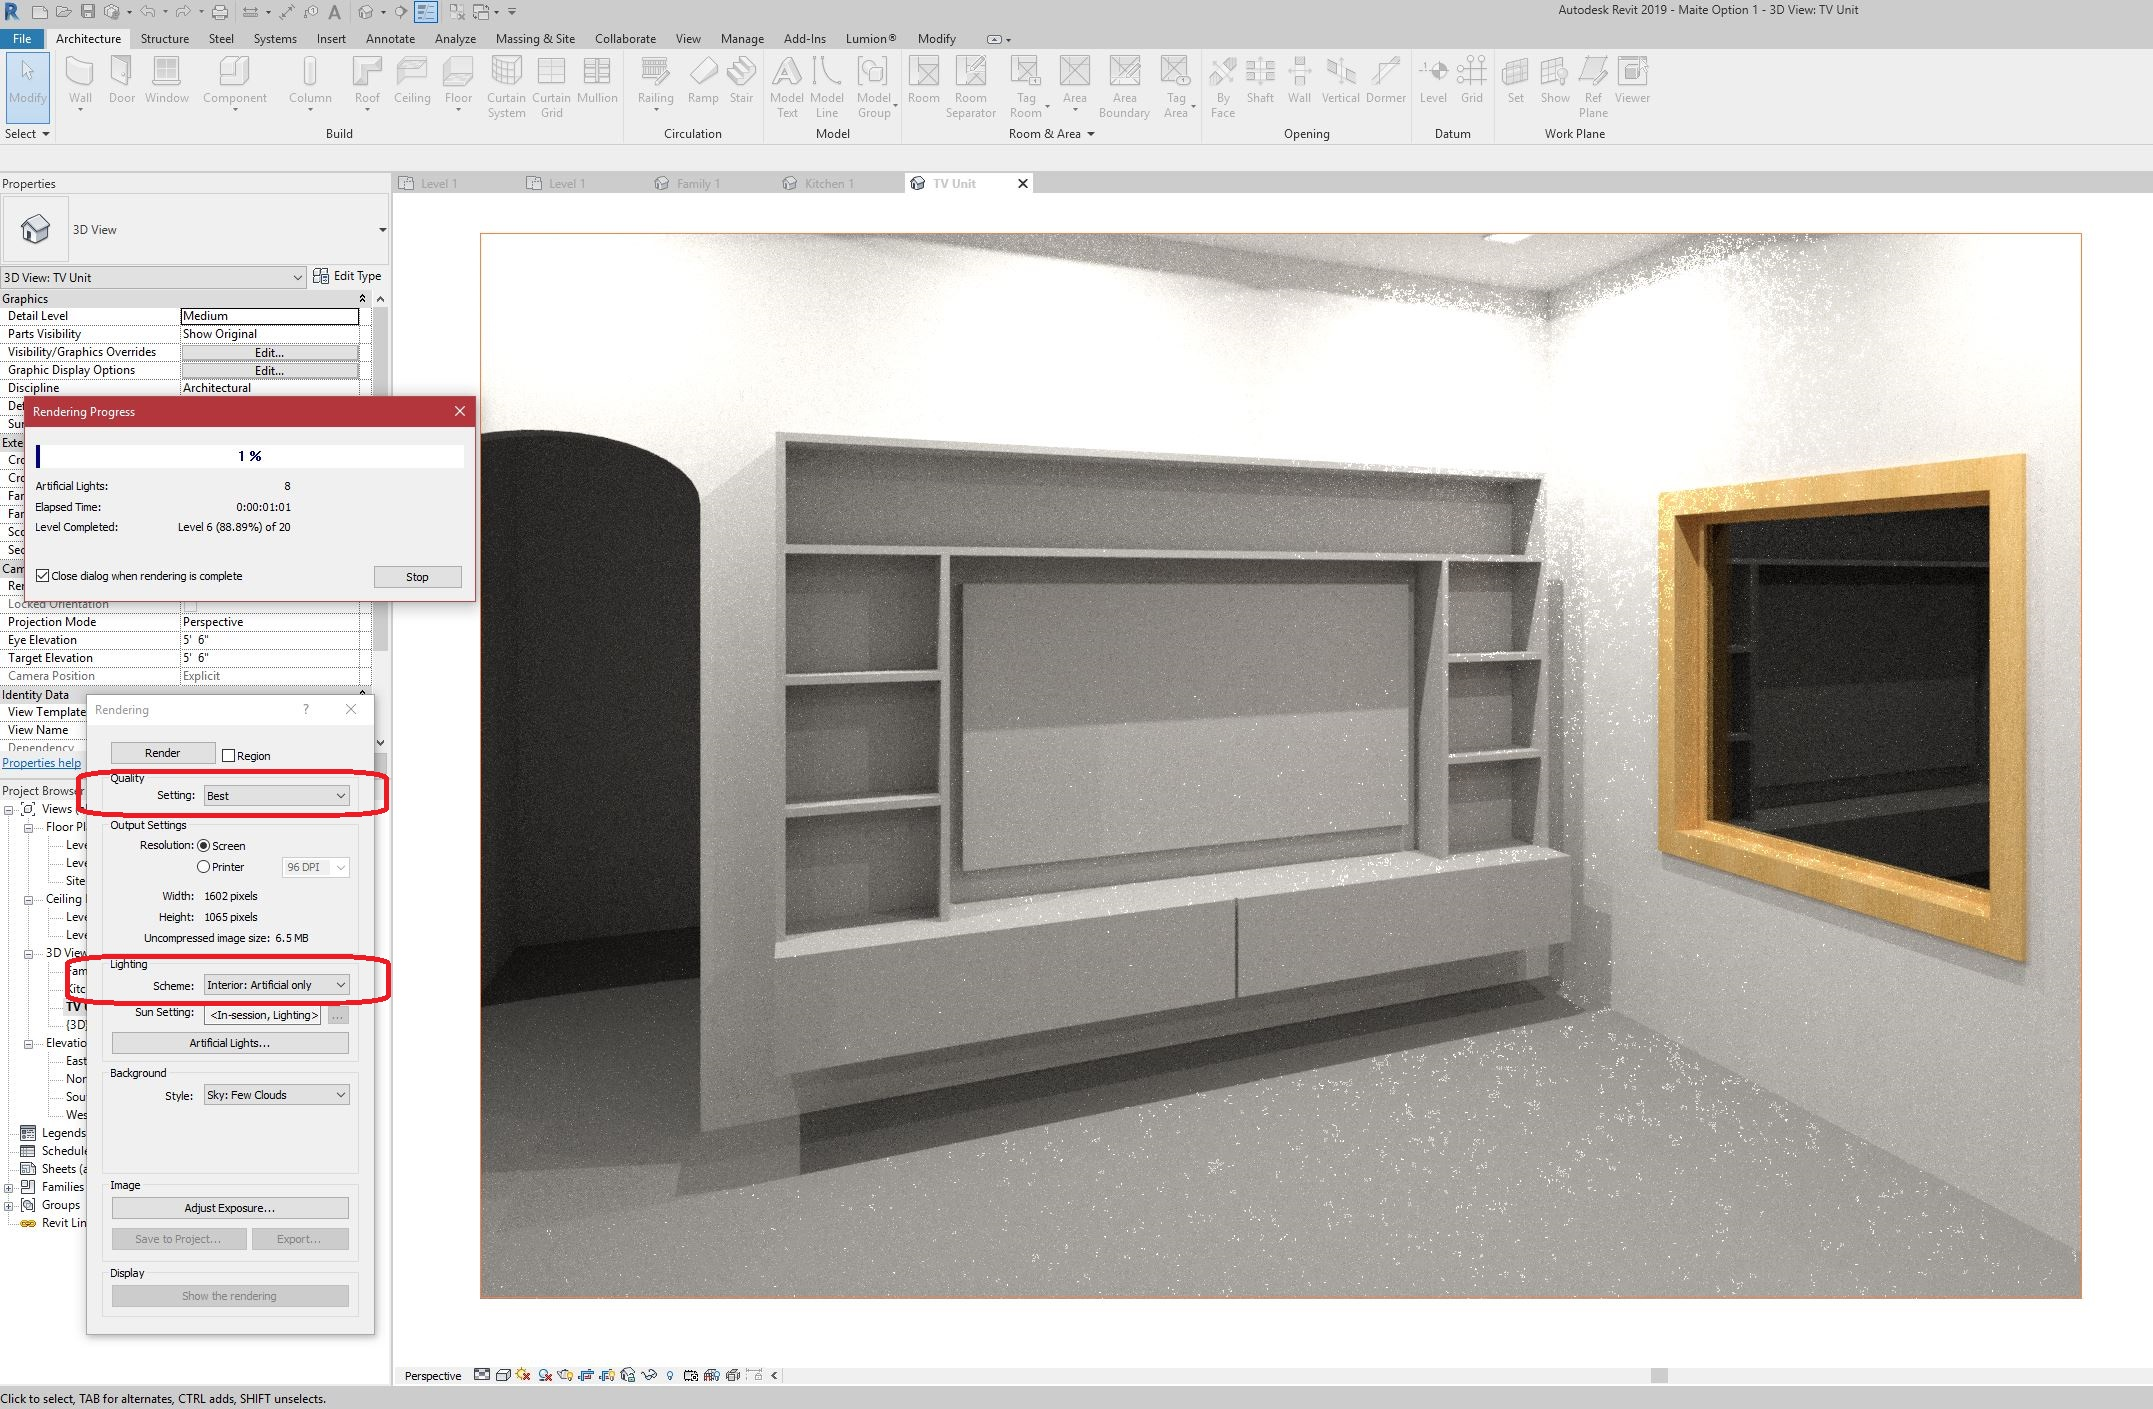 Solved: RENDER COMES OUT BLACK IN REVIT  PLEASE HELP!! - Autodesk